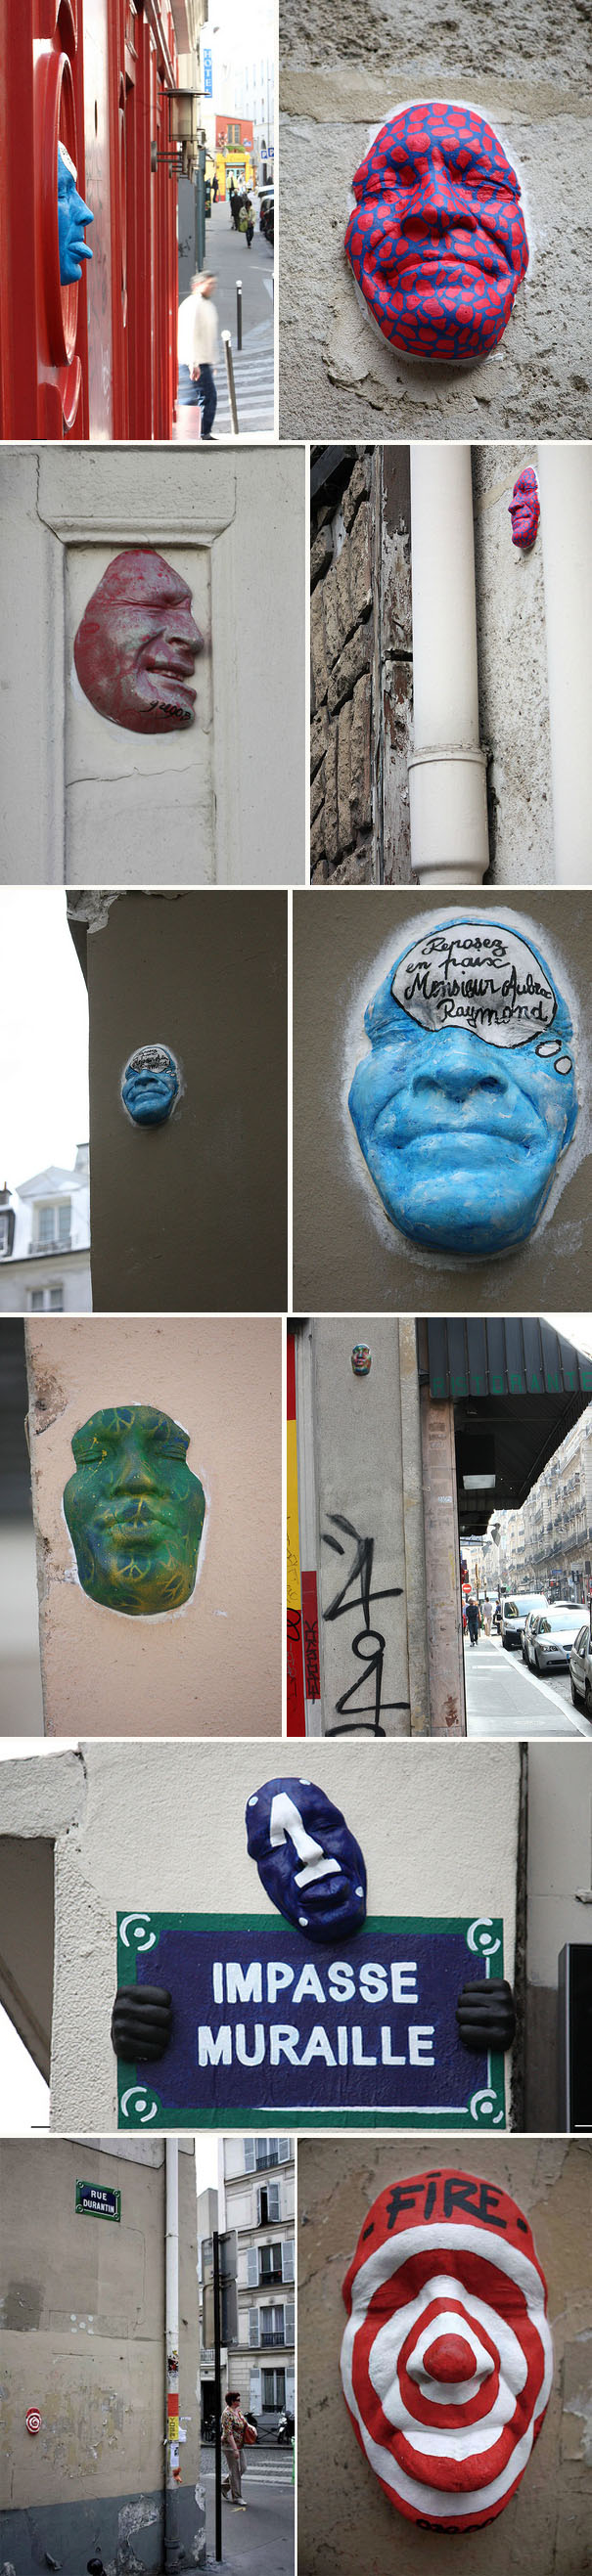 Street art in Paris, painted plaster self-portrait masks, Gregos, graffiti, collabcubed